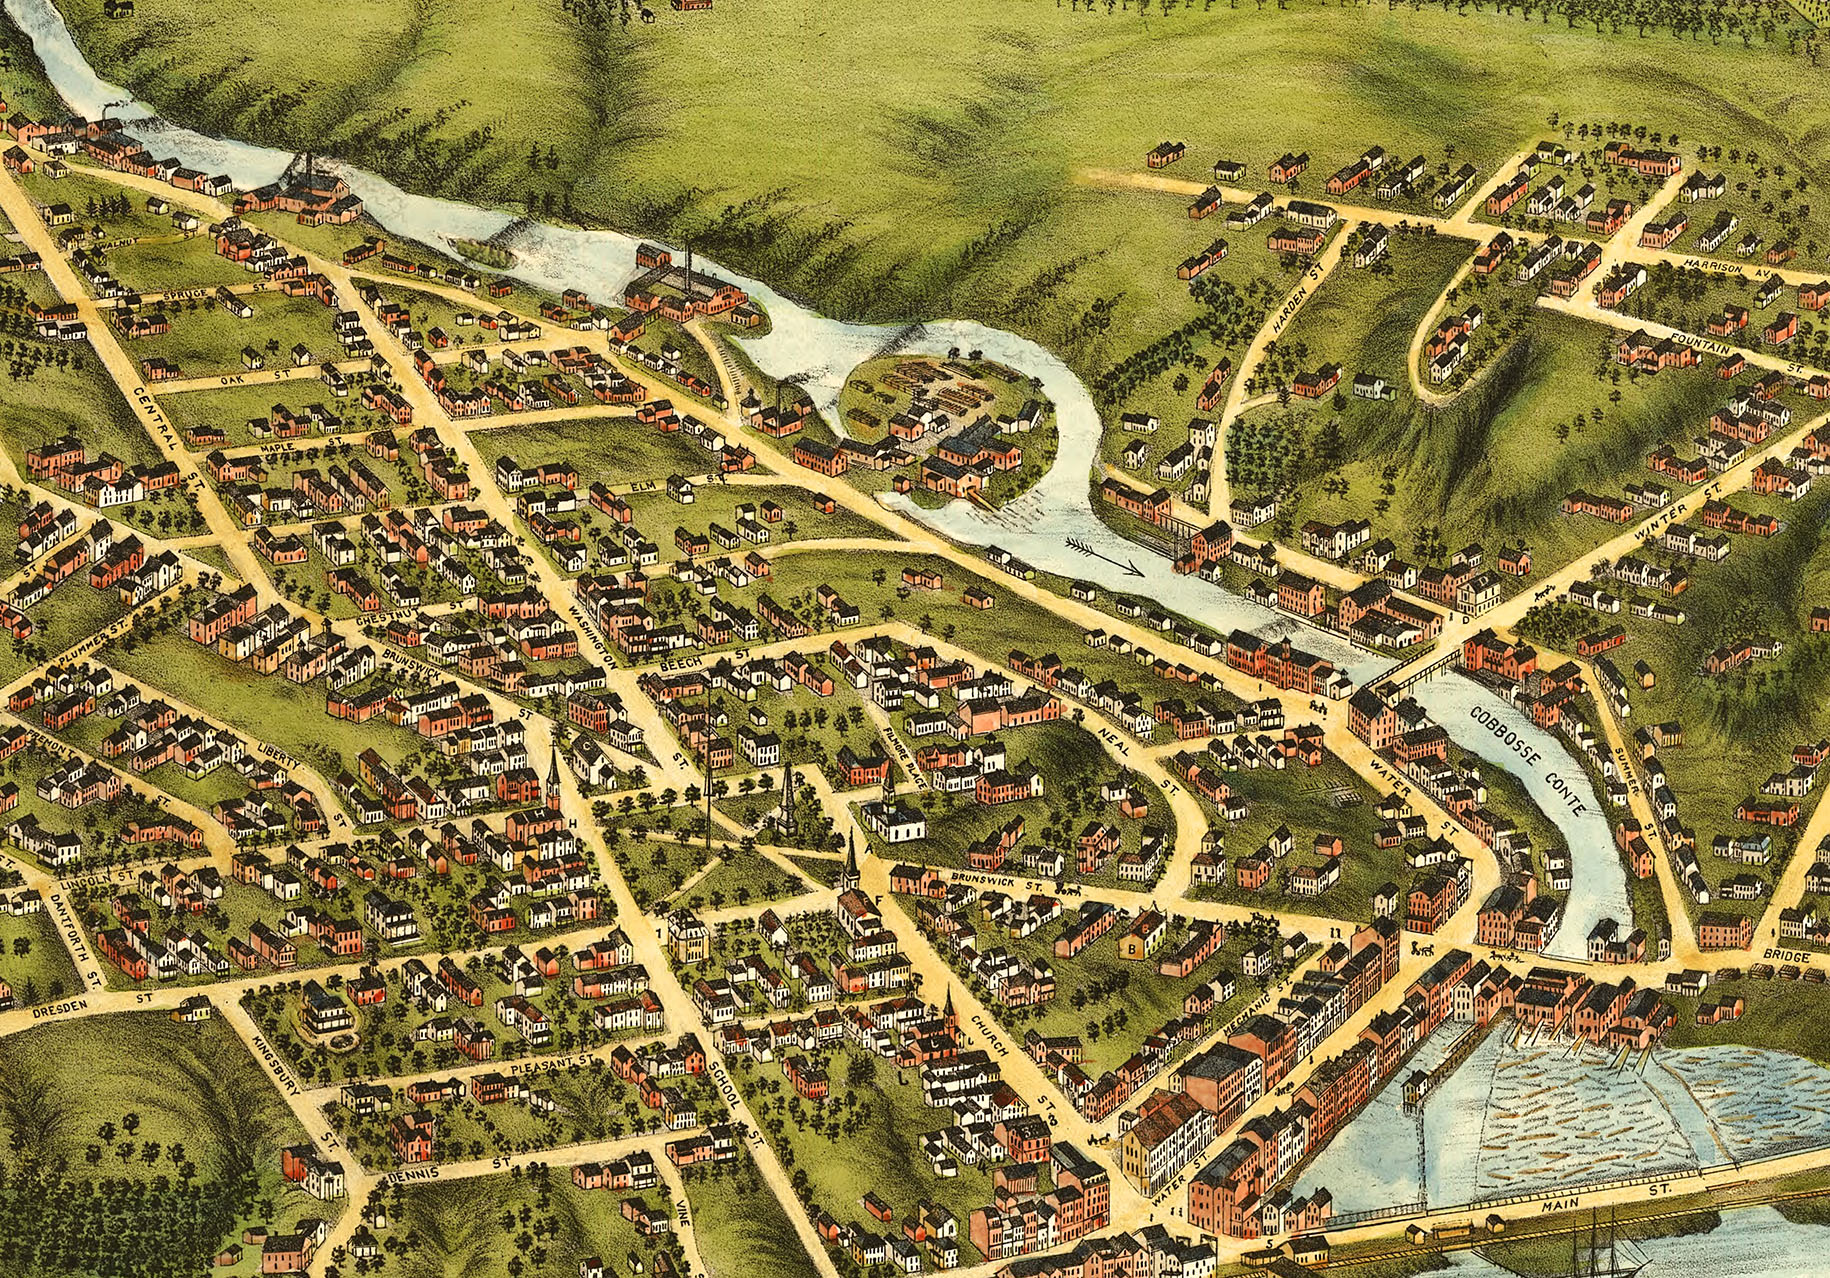 Gardiner and Pittston, Maine in 1878 - Bird's Eye View Map, Aerial on